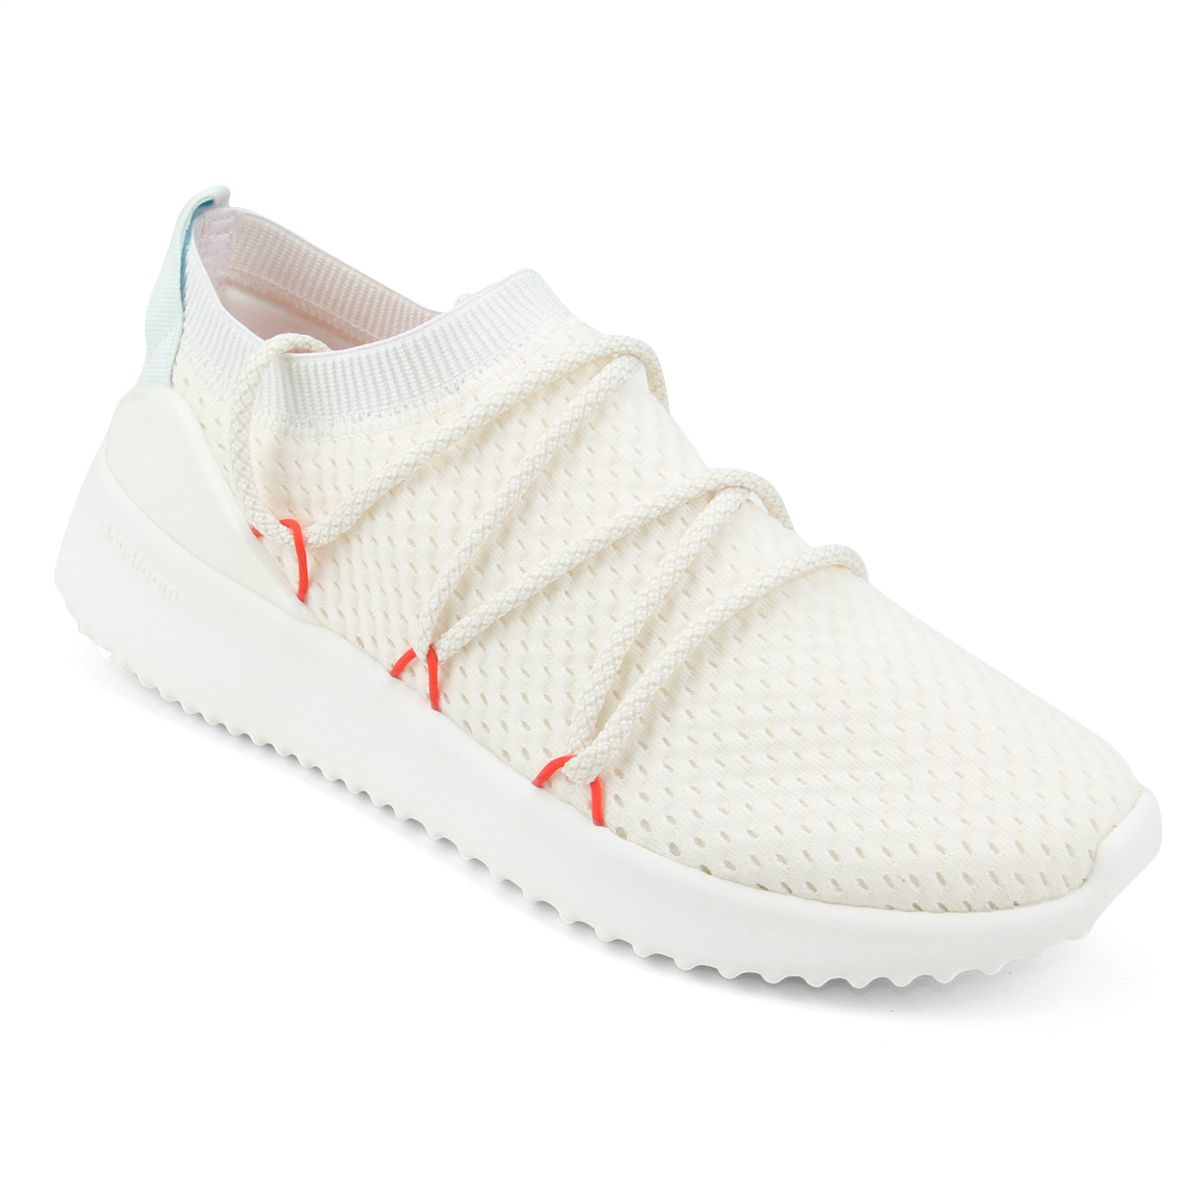 155f4a57e Tênis Adidas Ultimamotion W Feminino - Branco in 2019 | My Style ...